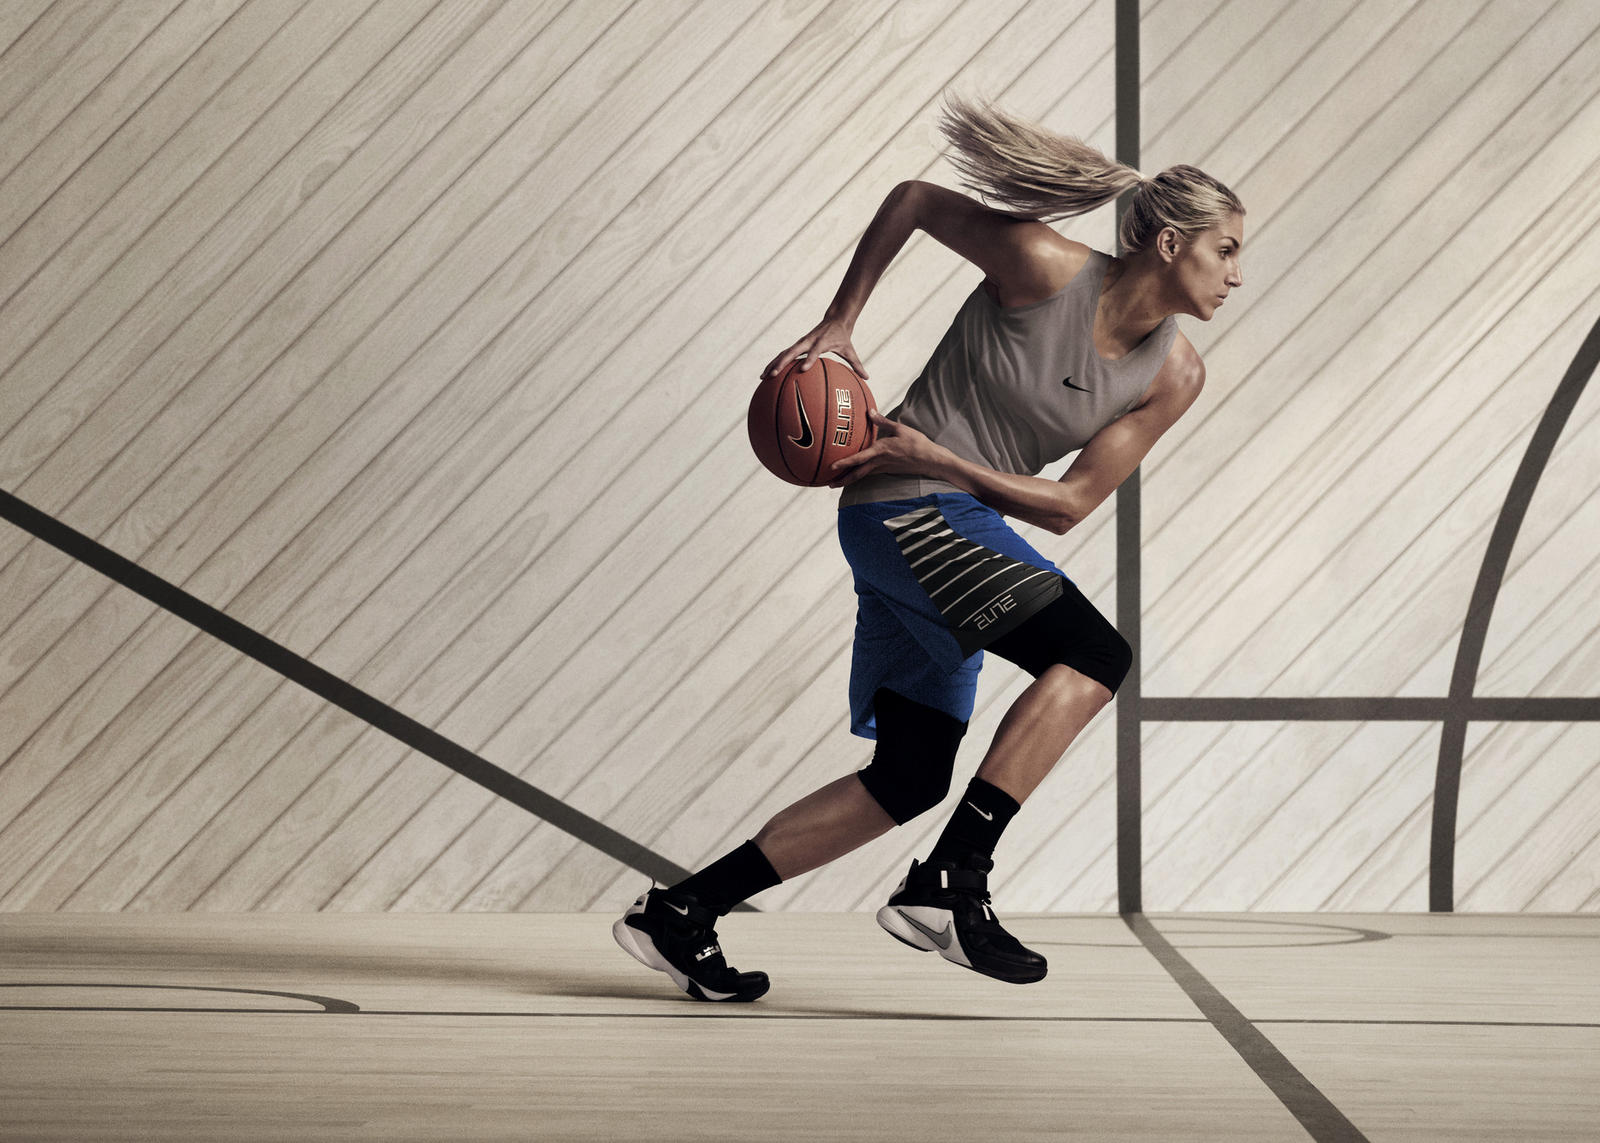 Nike Women's Basketball on-court